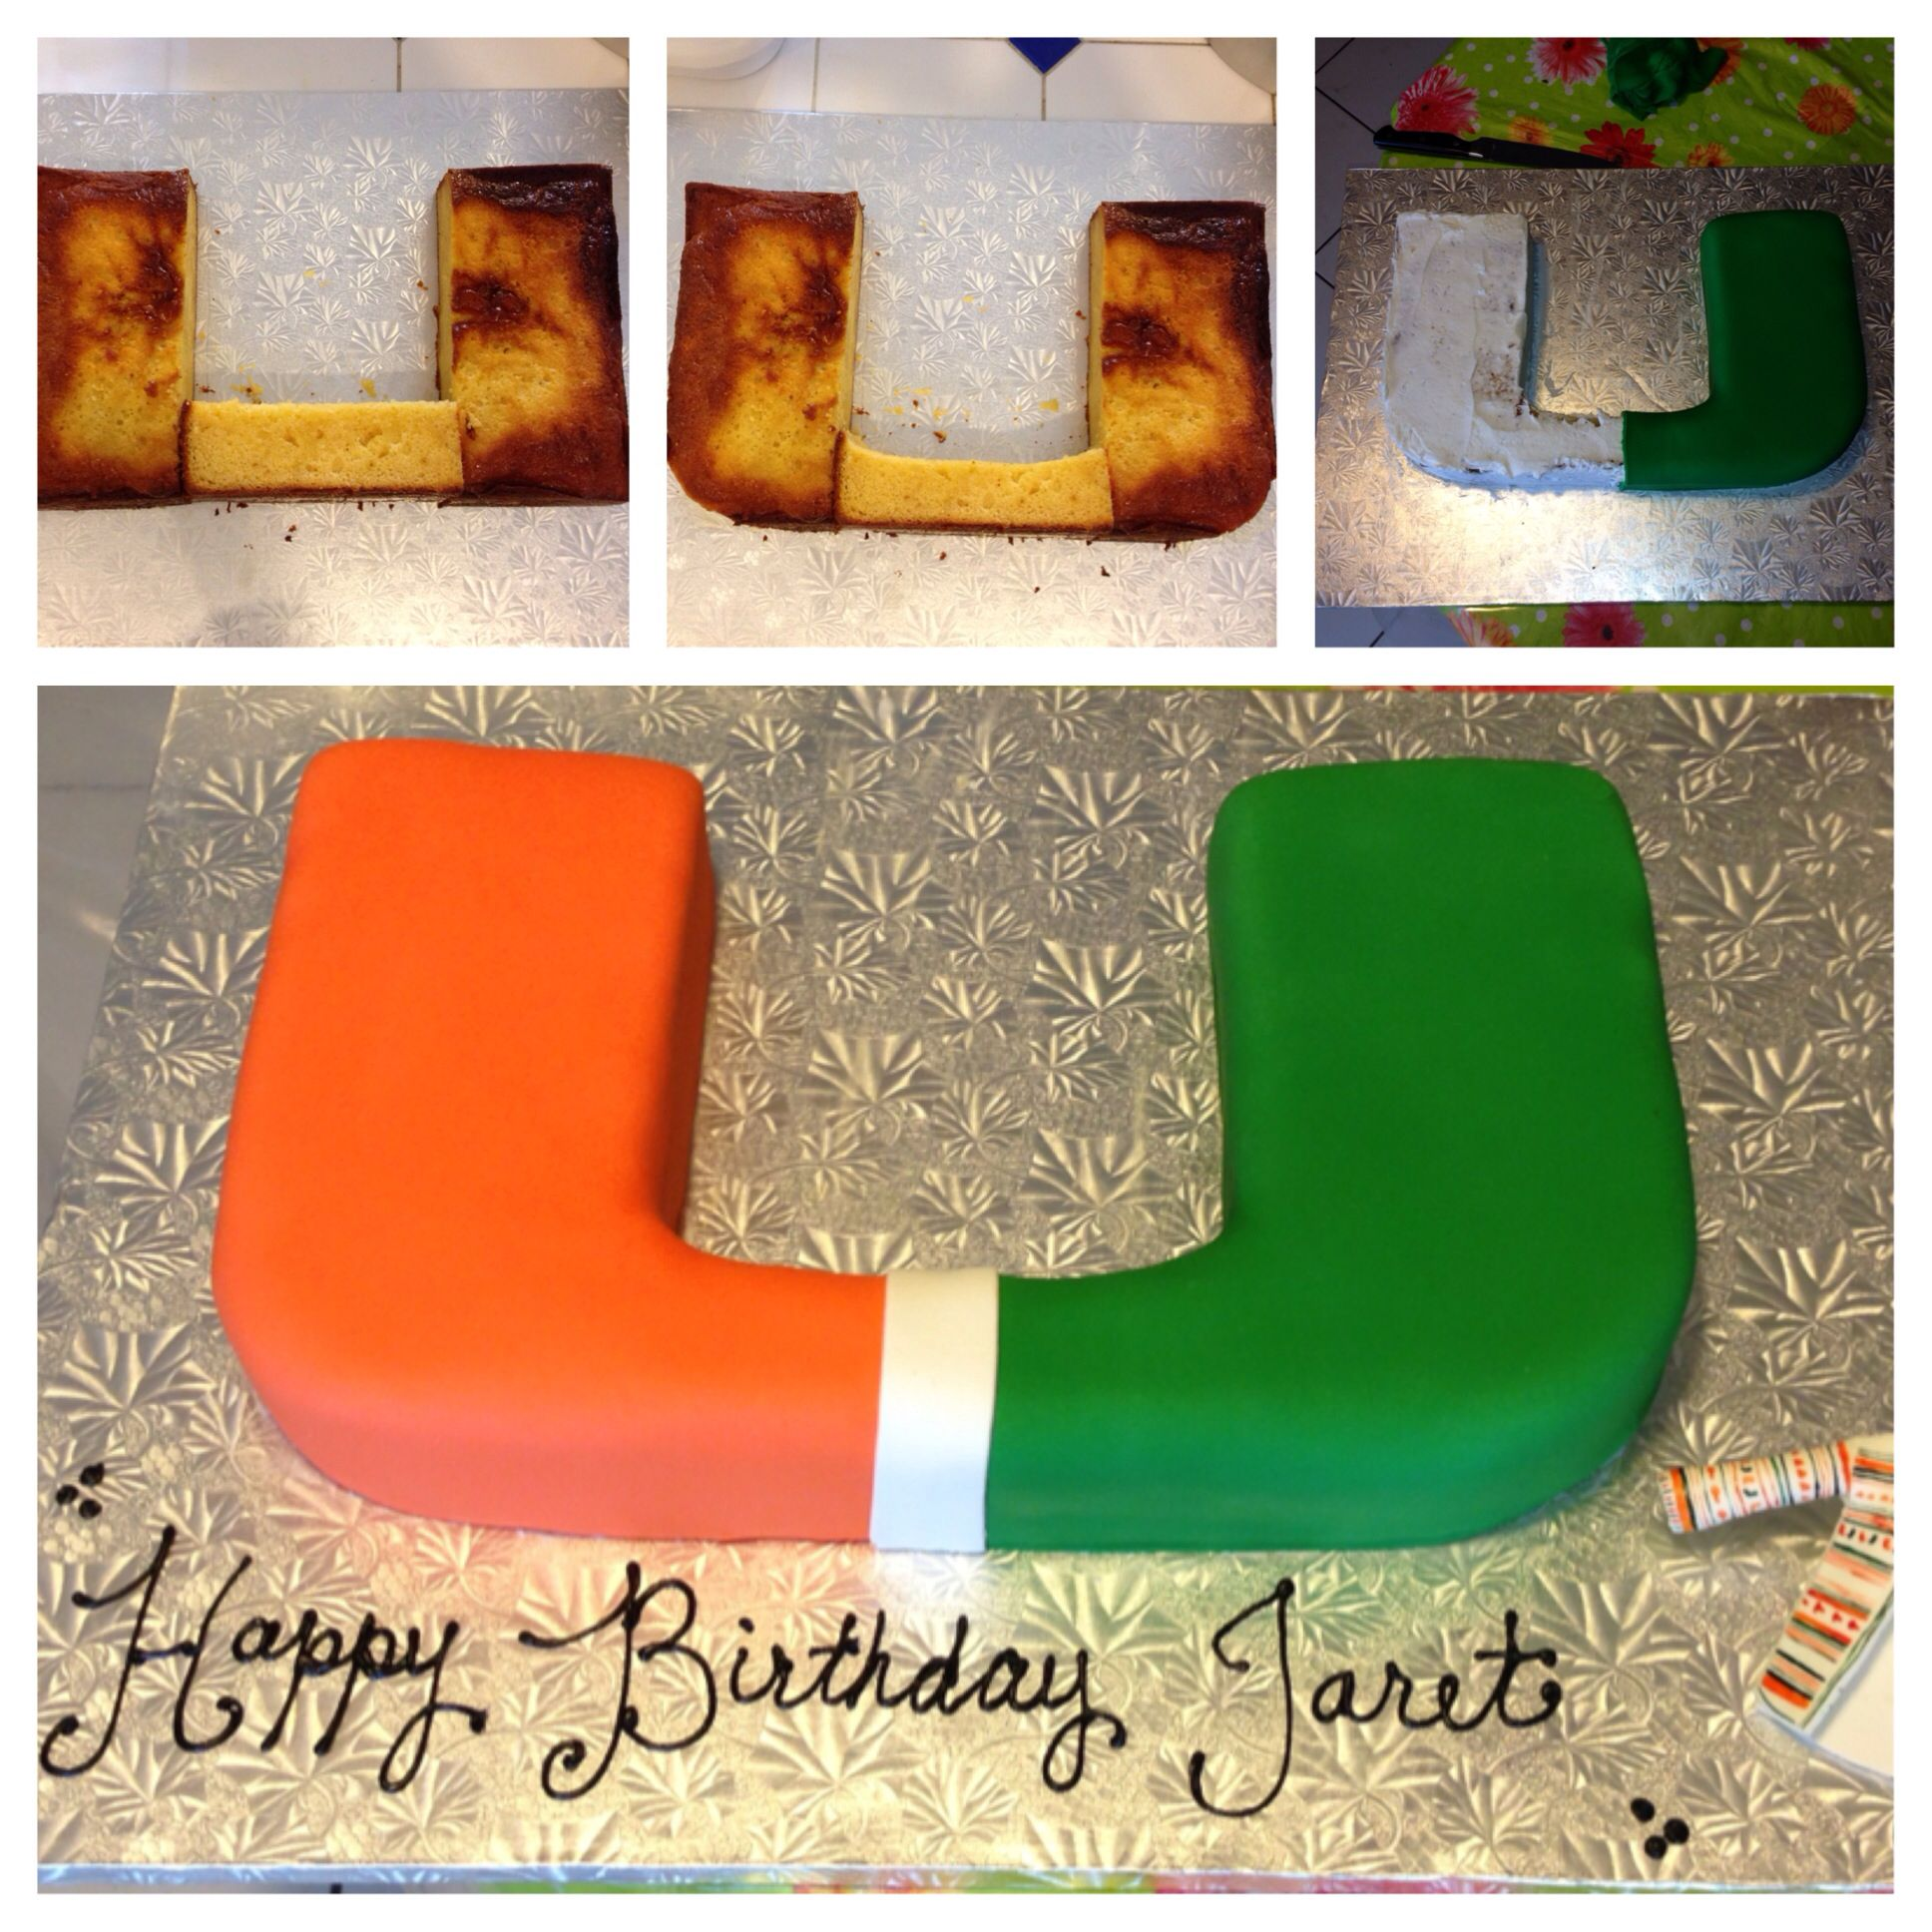 How the University of Miami cake is done Sweet Treats by Marta